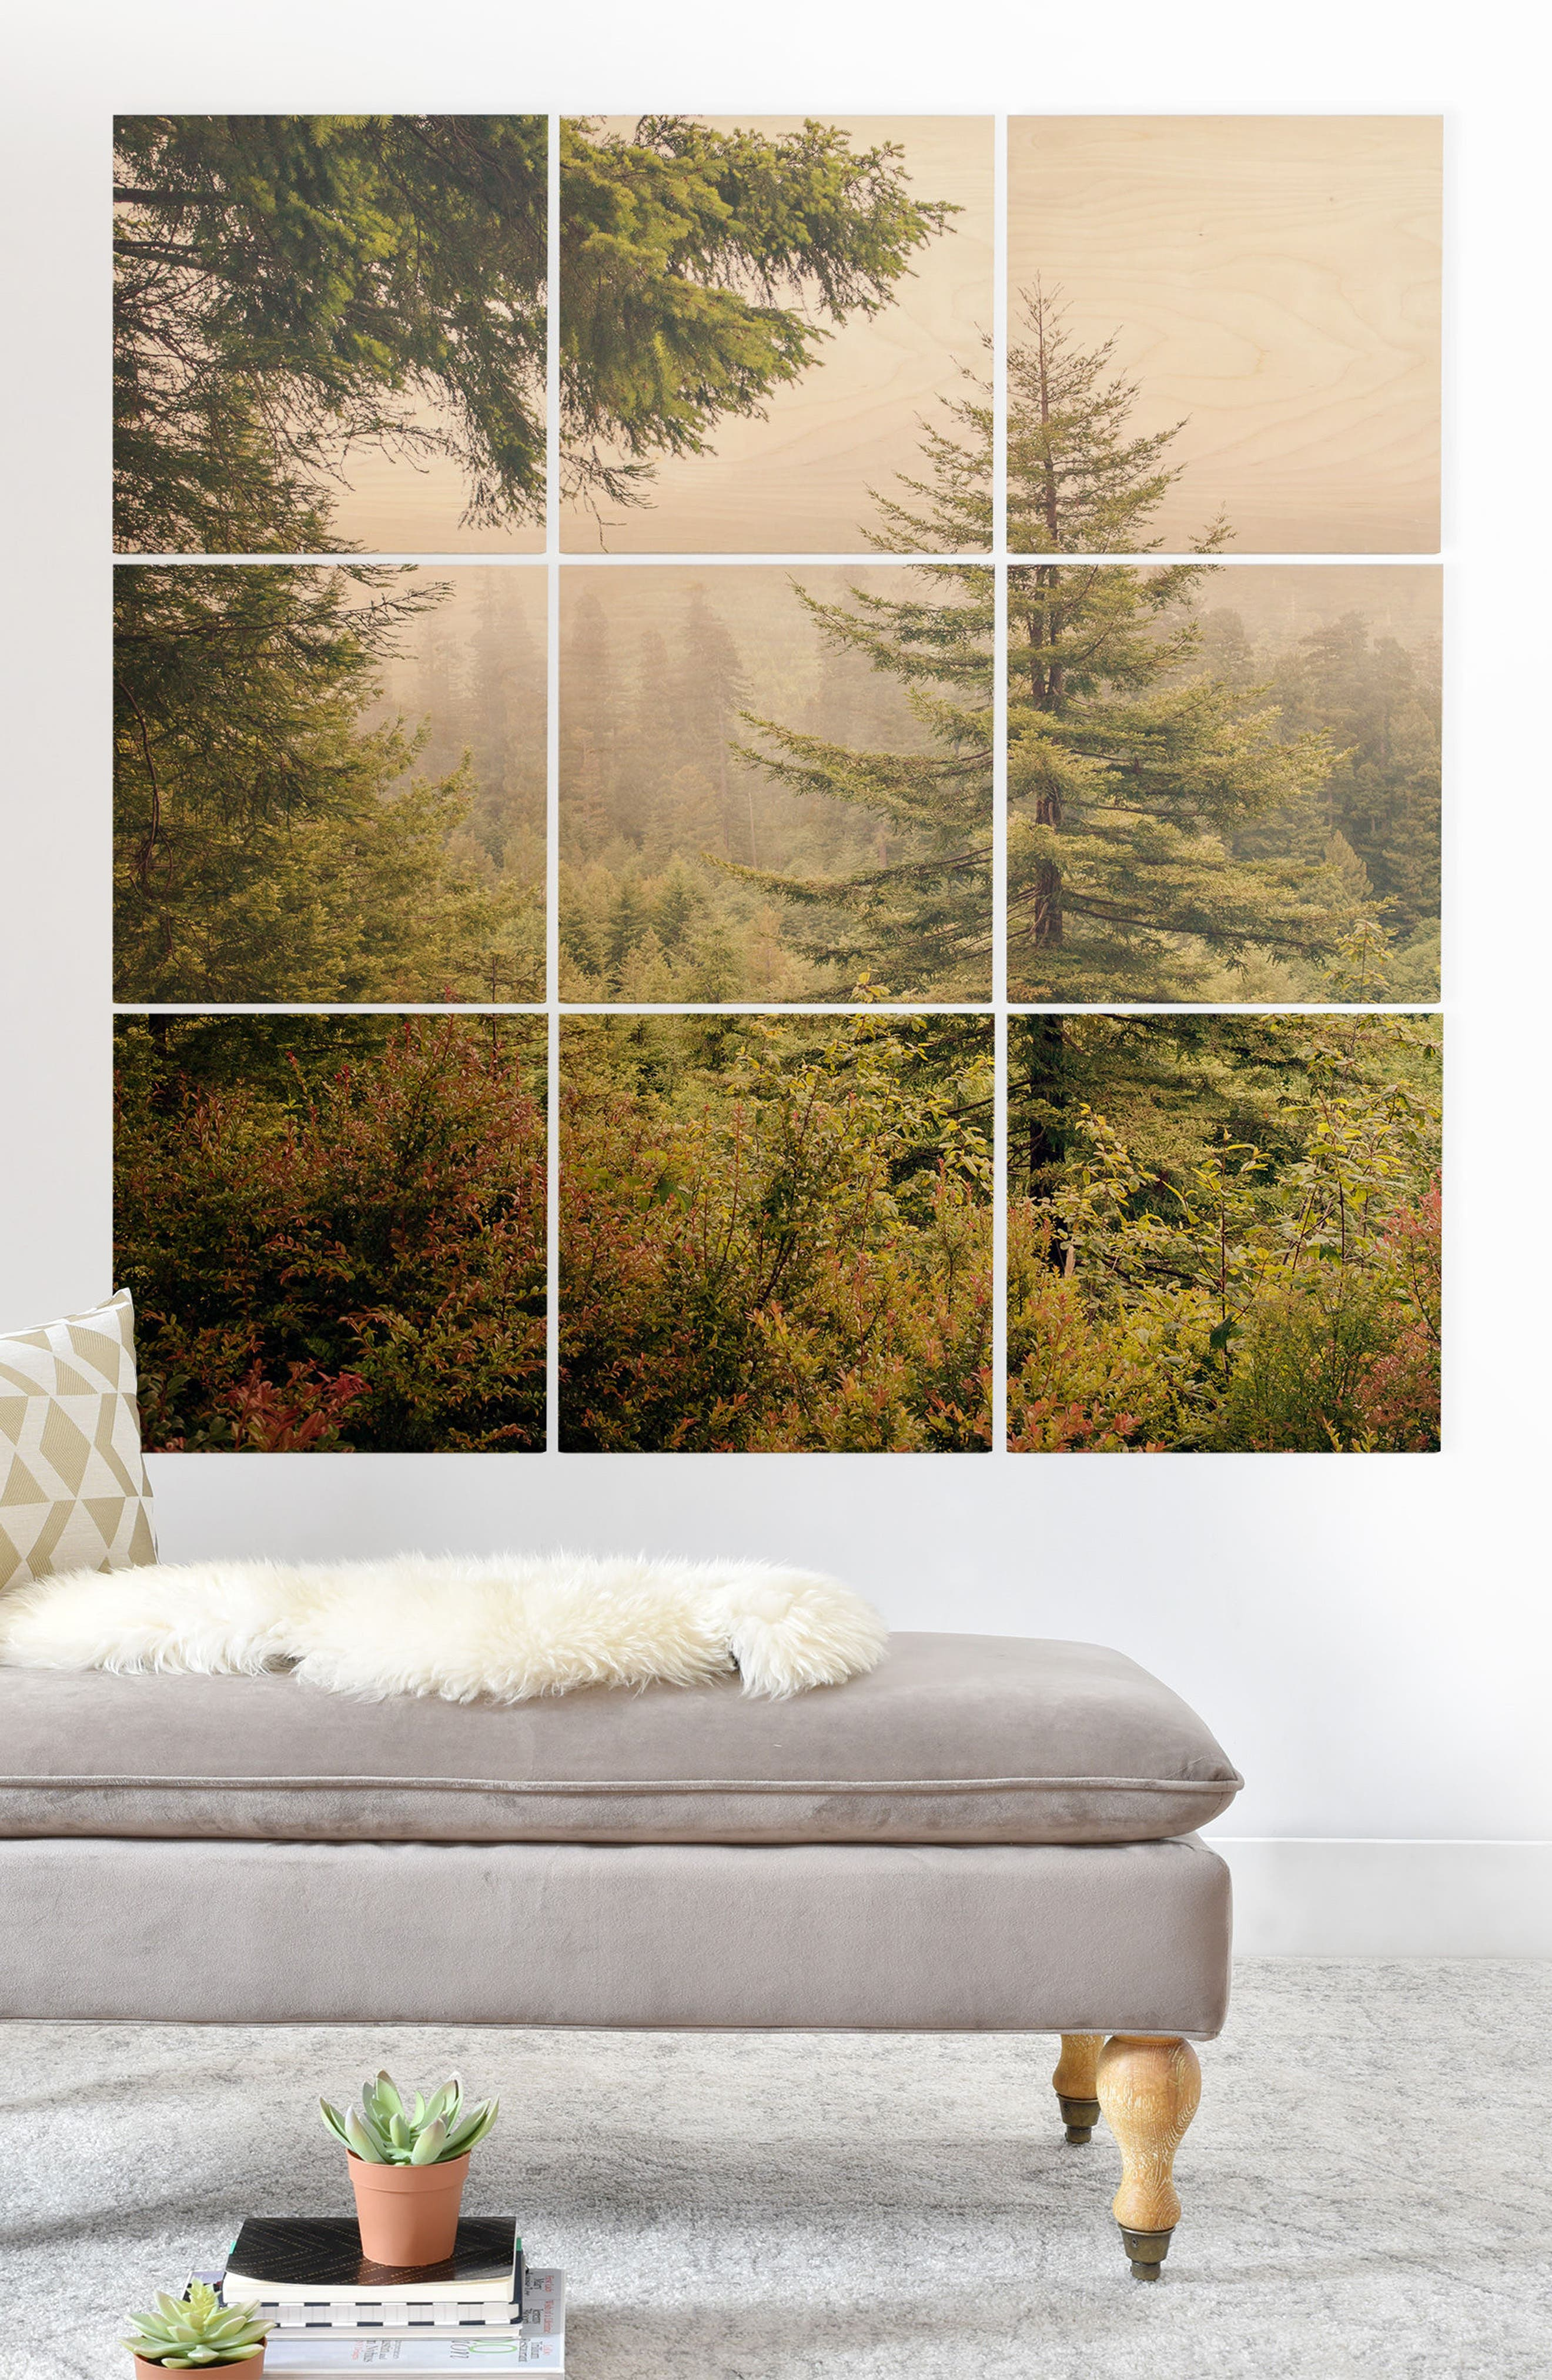 Into the Mist 9-Piece Wood Wall Mural,                             Alternate thumbnail 2, color,